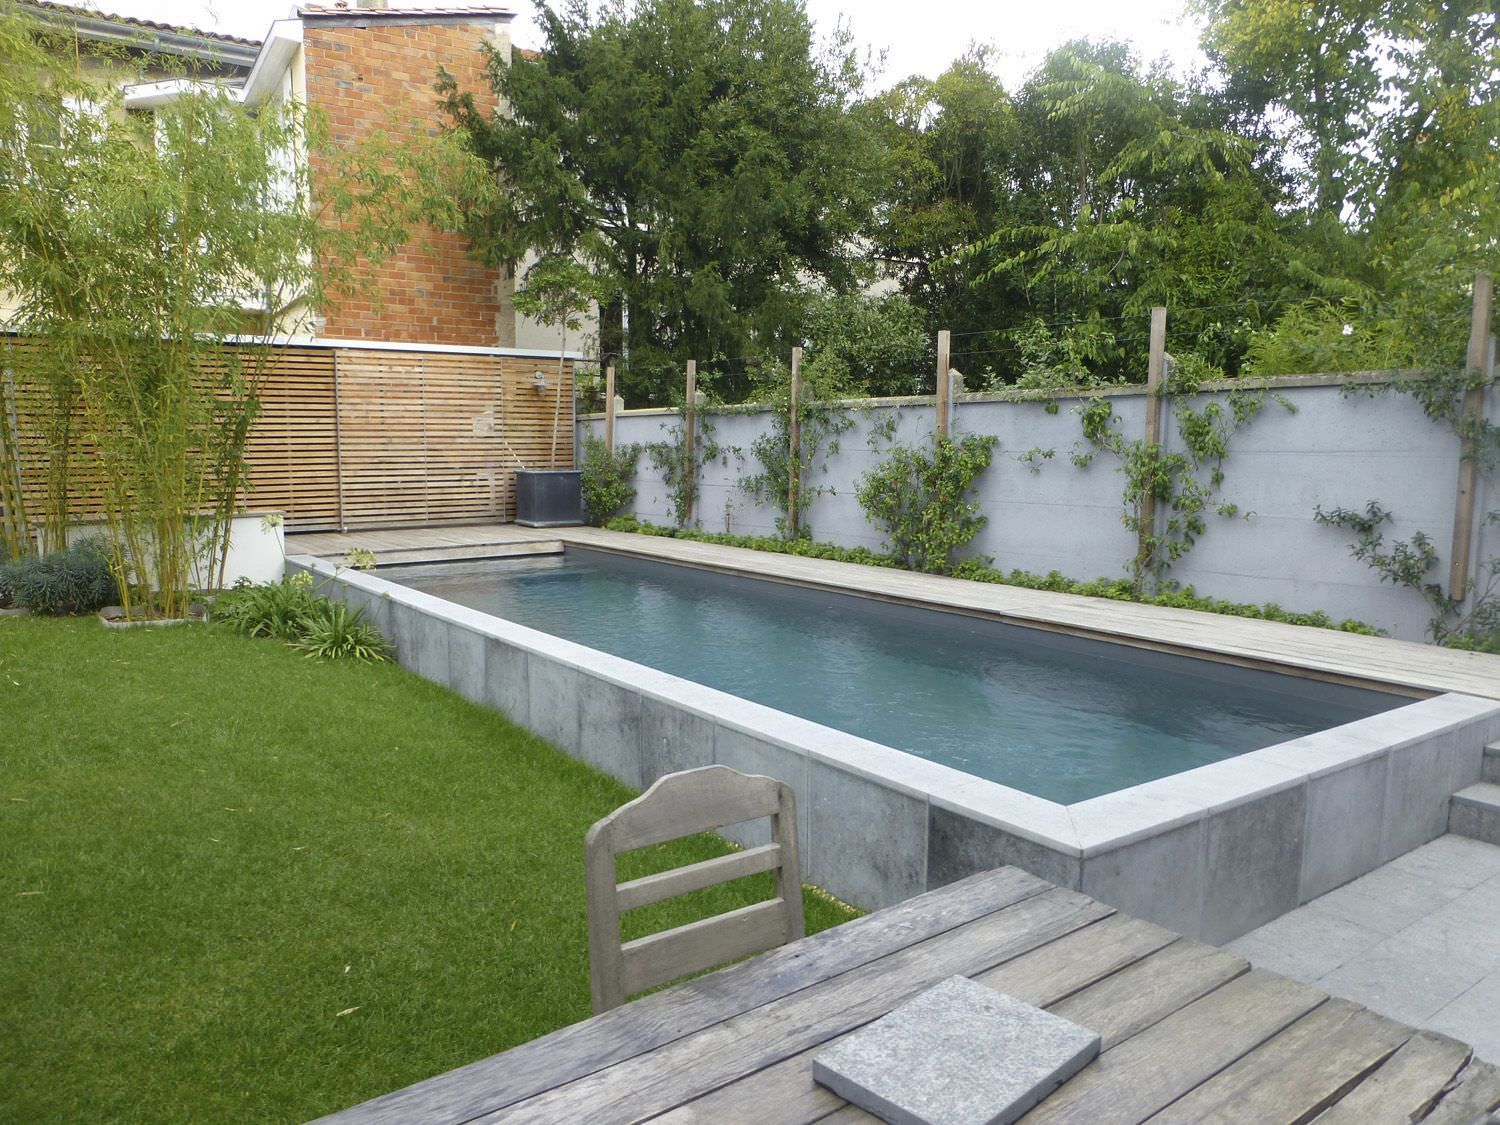 Piscine semi enterr e en b ton plouf pinterest for Piscine hors sol semi enterree reglementation